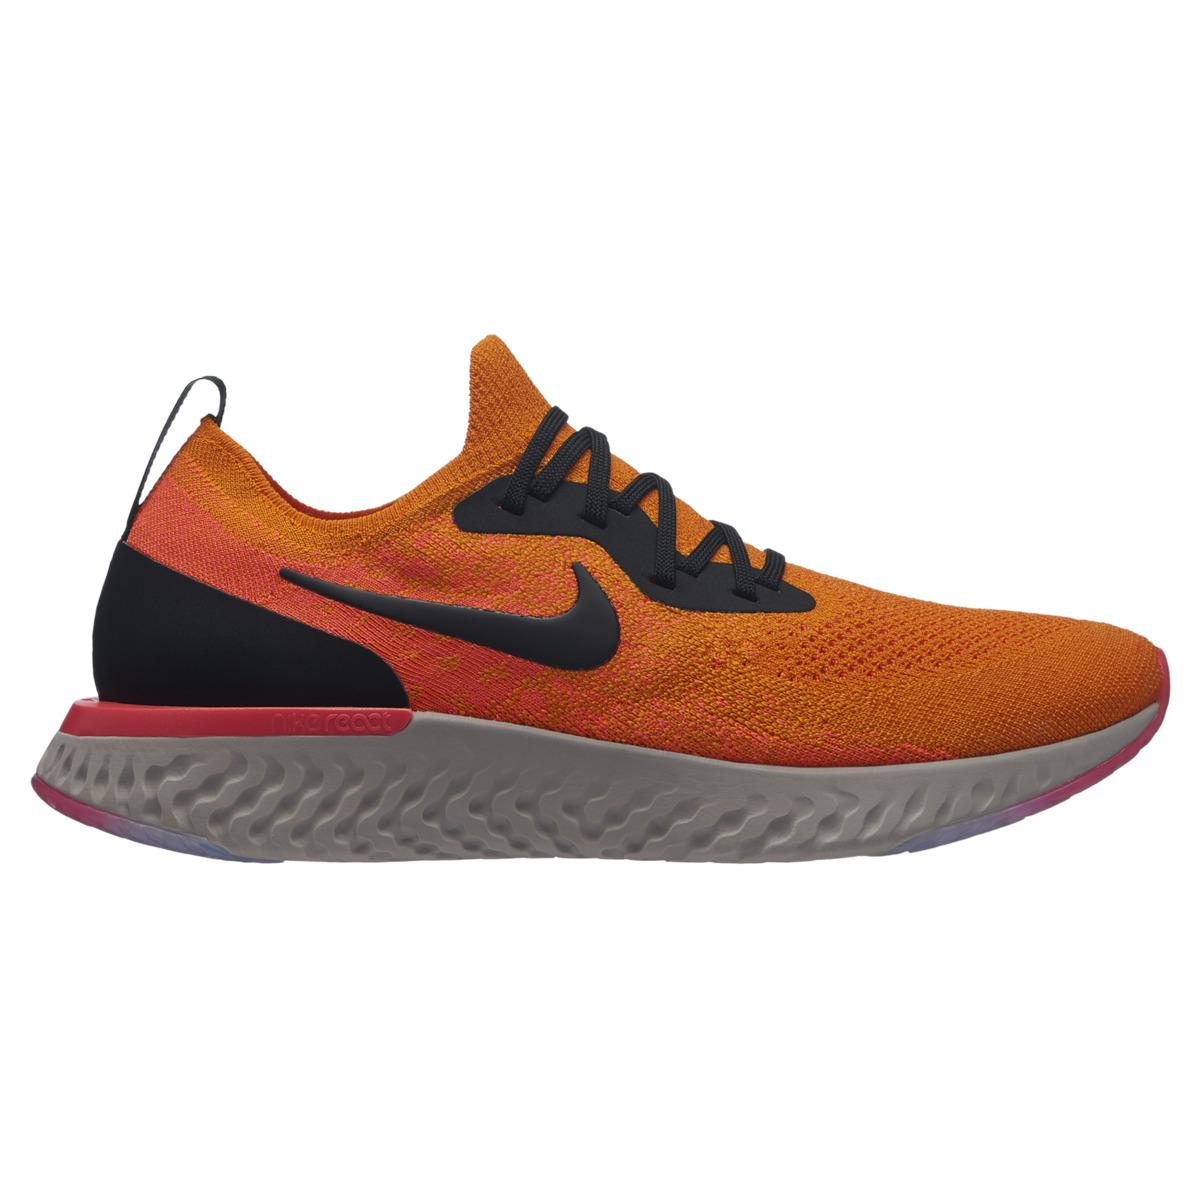 60b508d4047a Nike Epic React Flyknit Running Shoes in Orange for Men - Lyst